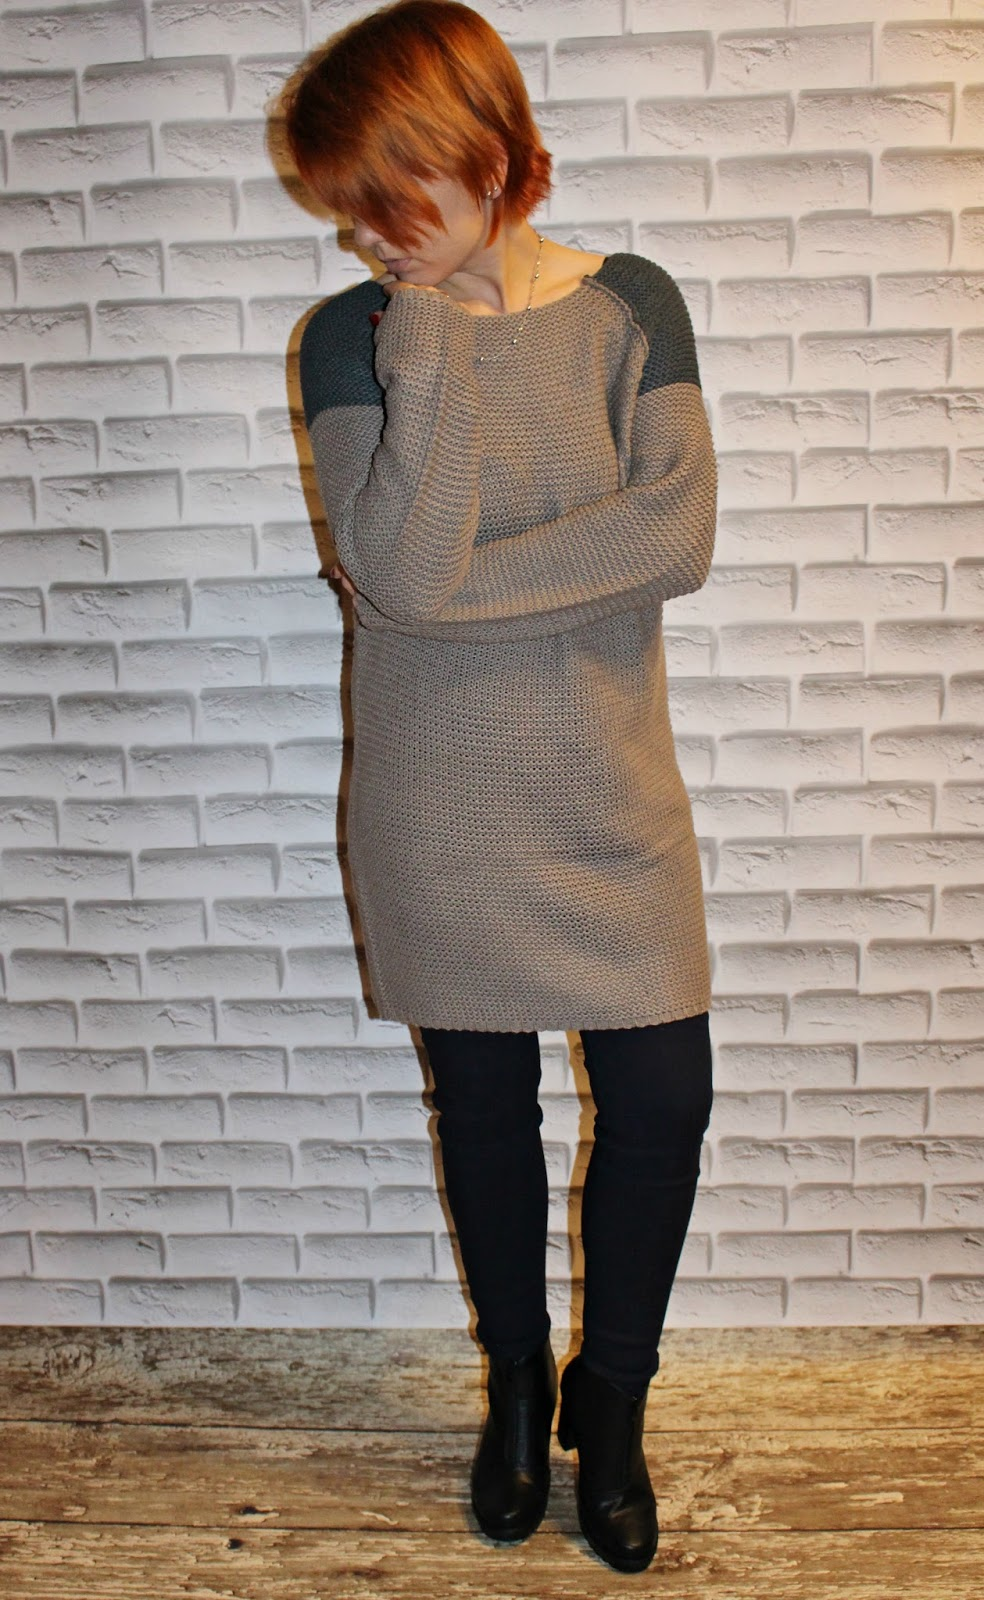 http://www.rosewholesale.com/cheapest/street-snap-color-block-sweater-1377279.html?lkid=352248